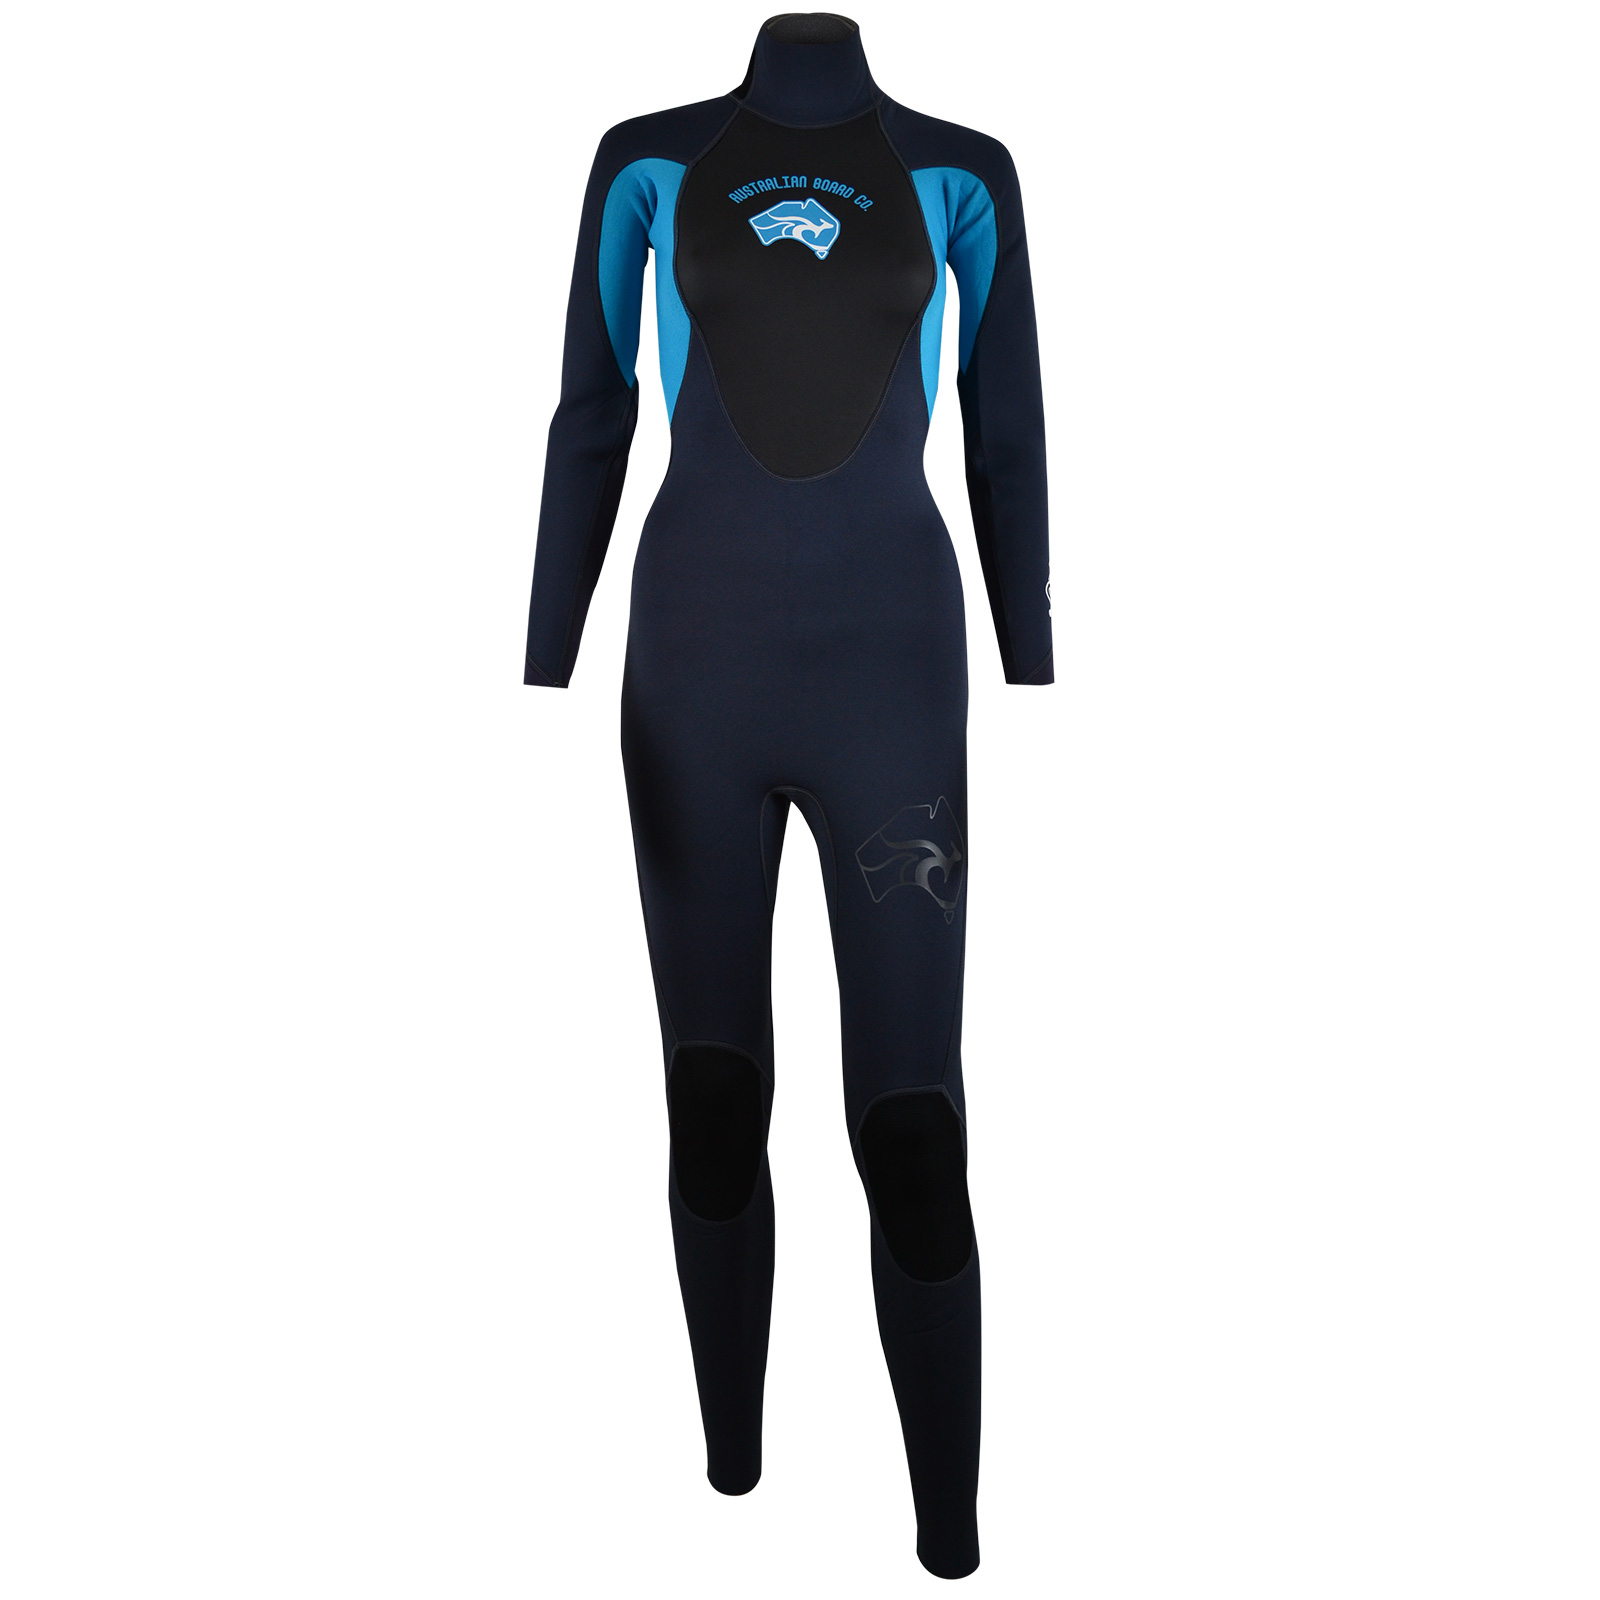 a318e74dba PULSE Womens 3 2mm SUMMER Wetsuit - Circle One